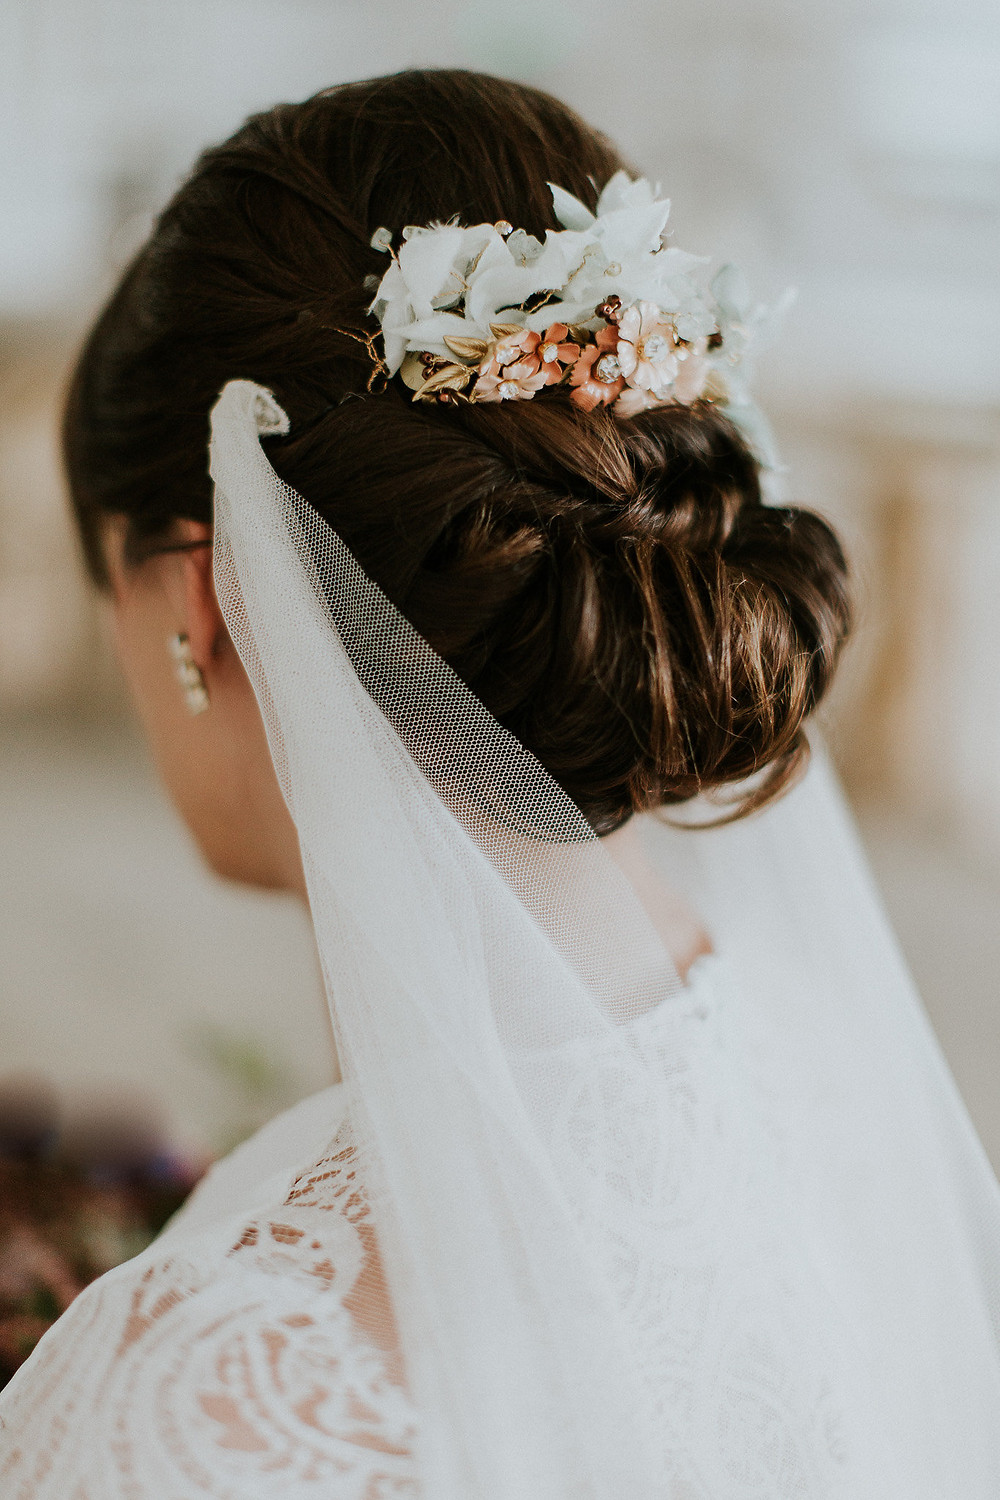 Bridal details showing veil and floral headpiece